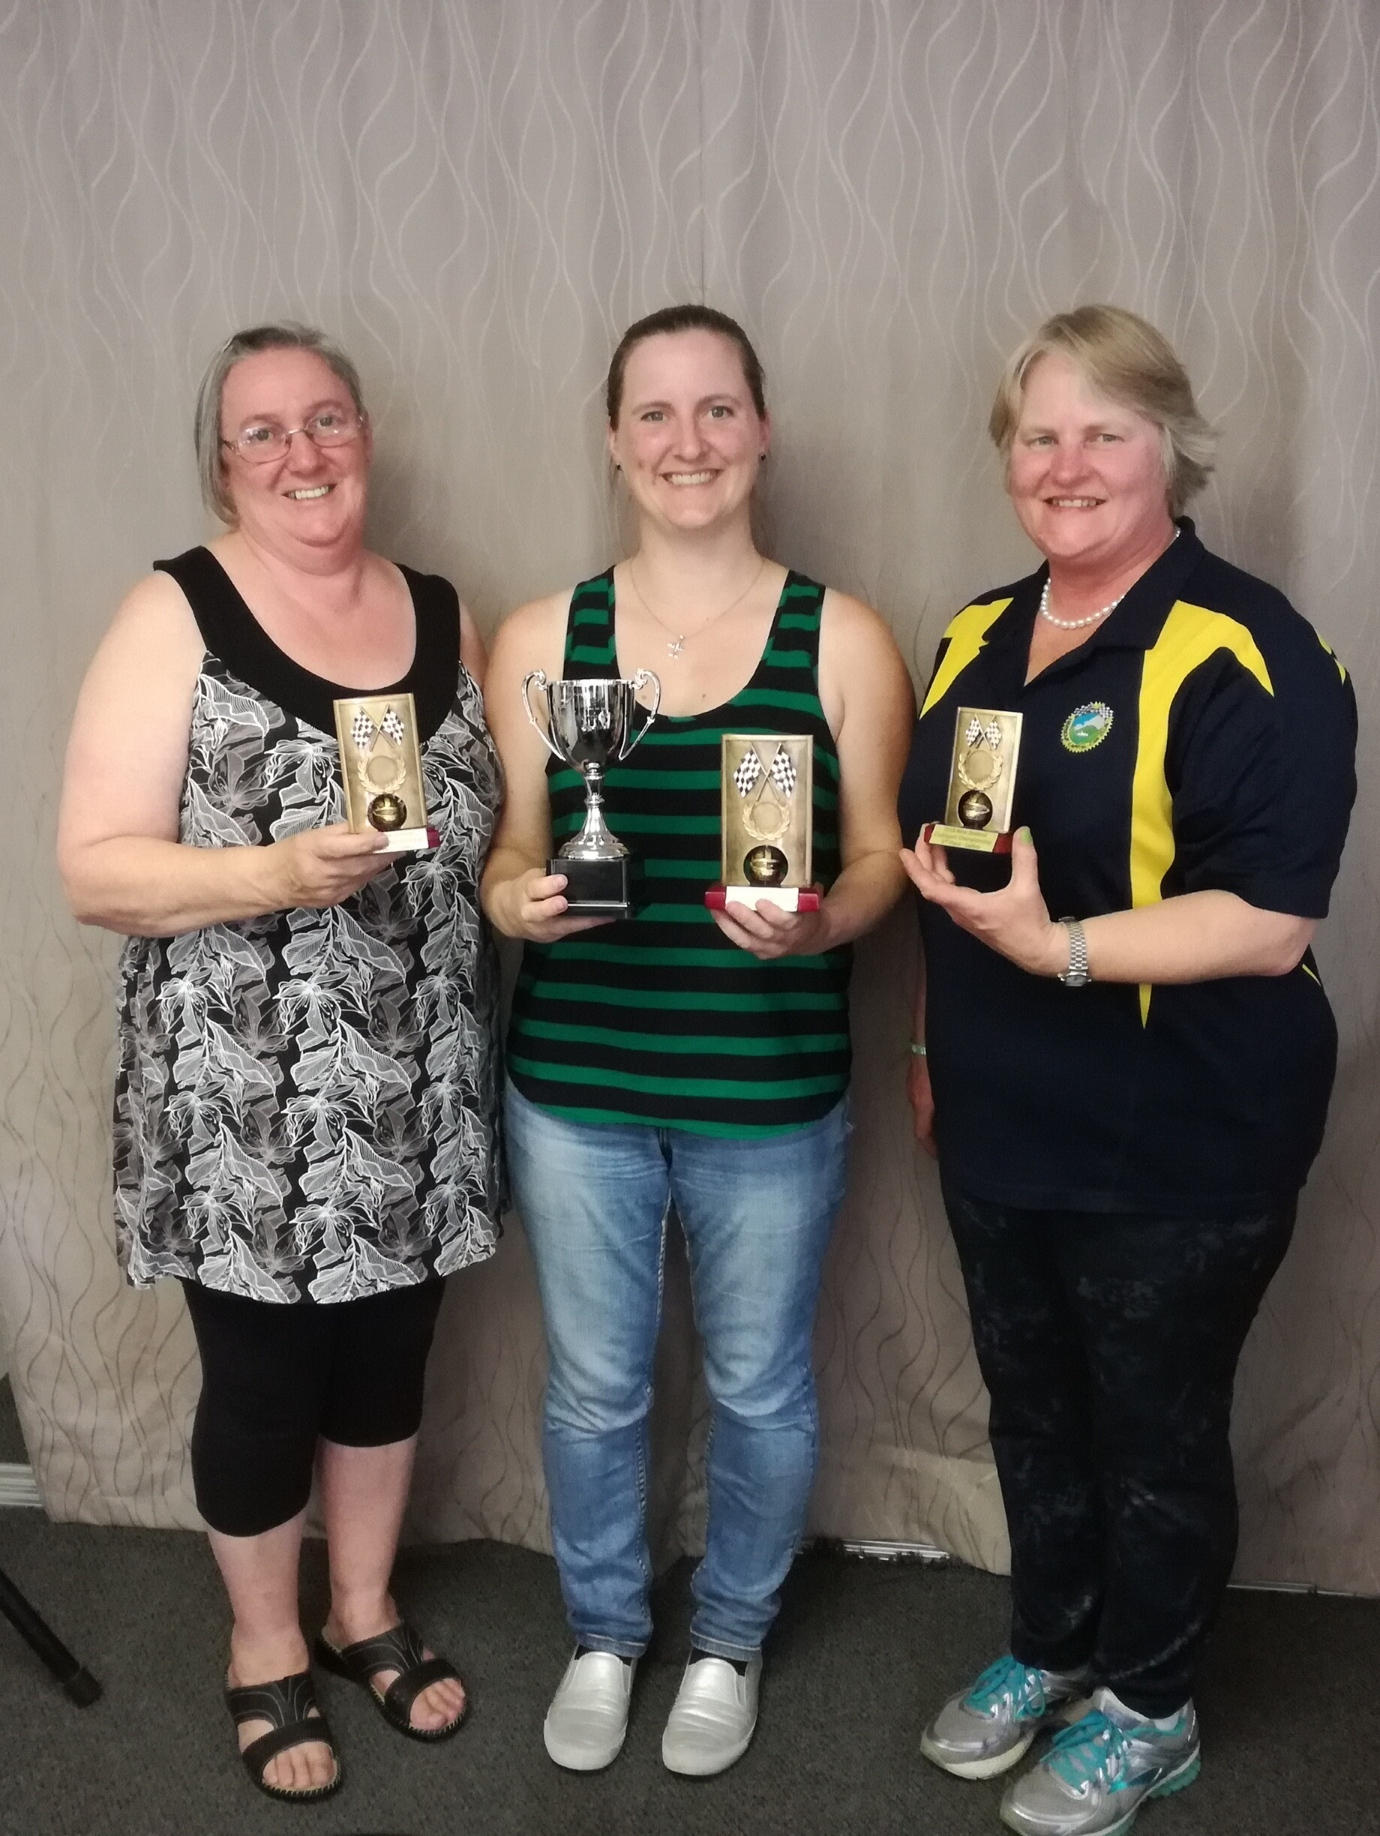 Rachel Lawrie (centre) with second placegetter Cathy Reid (left) and third placegetter Jilly Fisher (right).